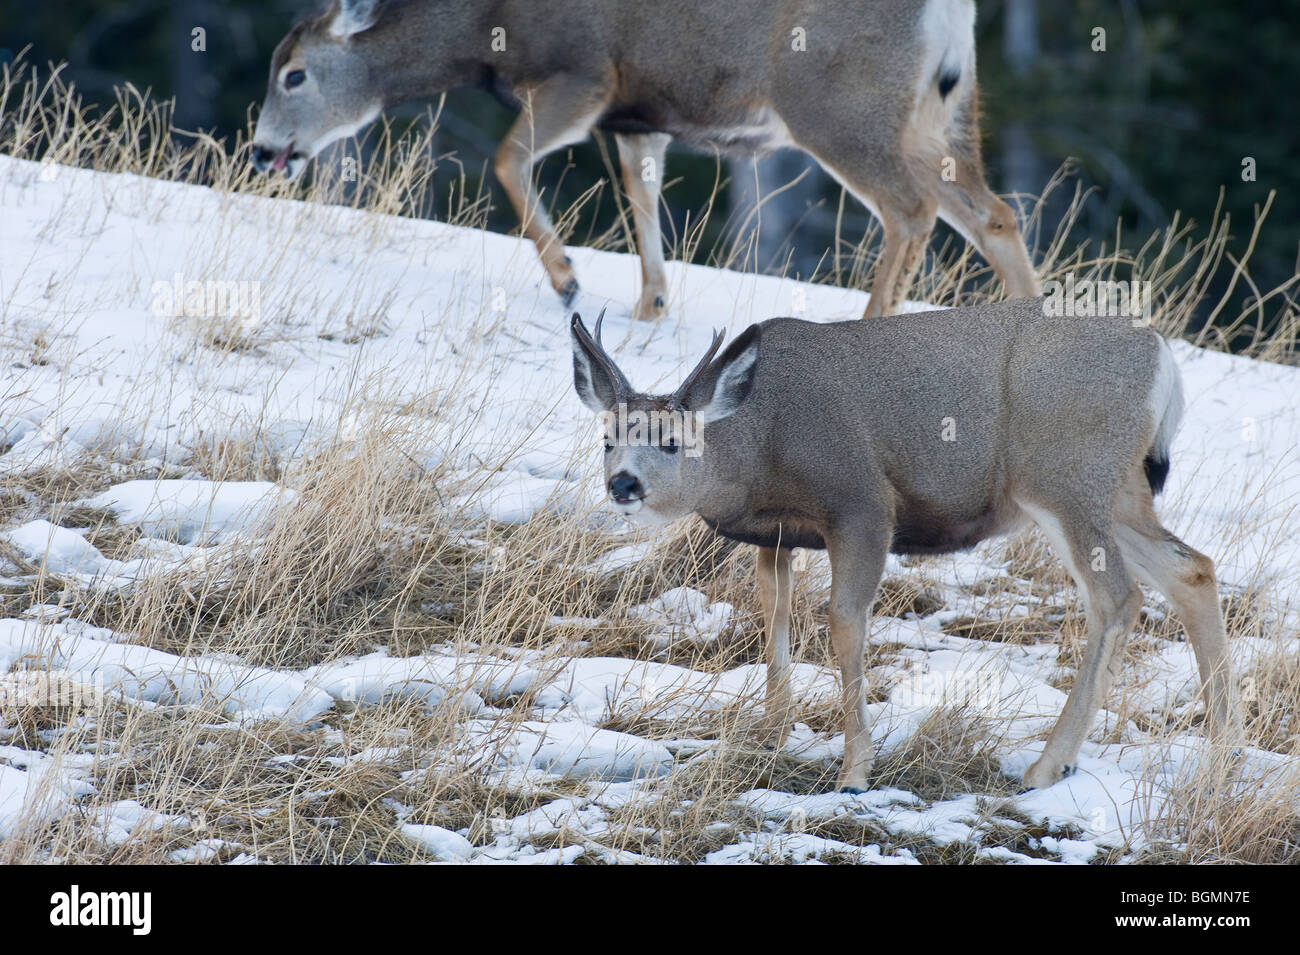 A mule deer buck foraging along a snow covered hillside - Stock Image